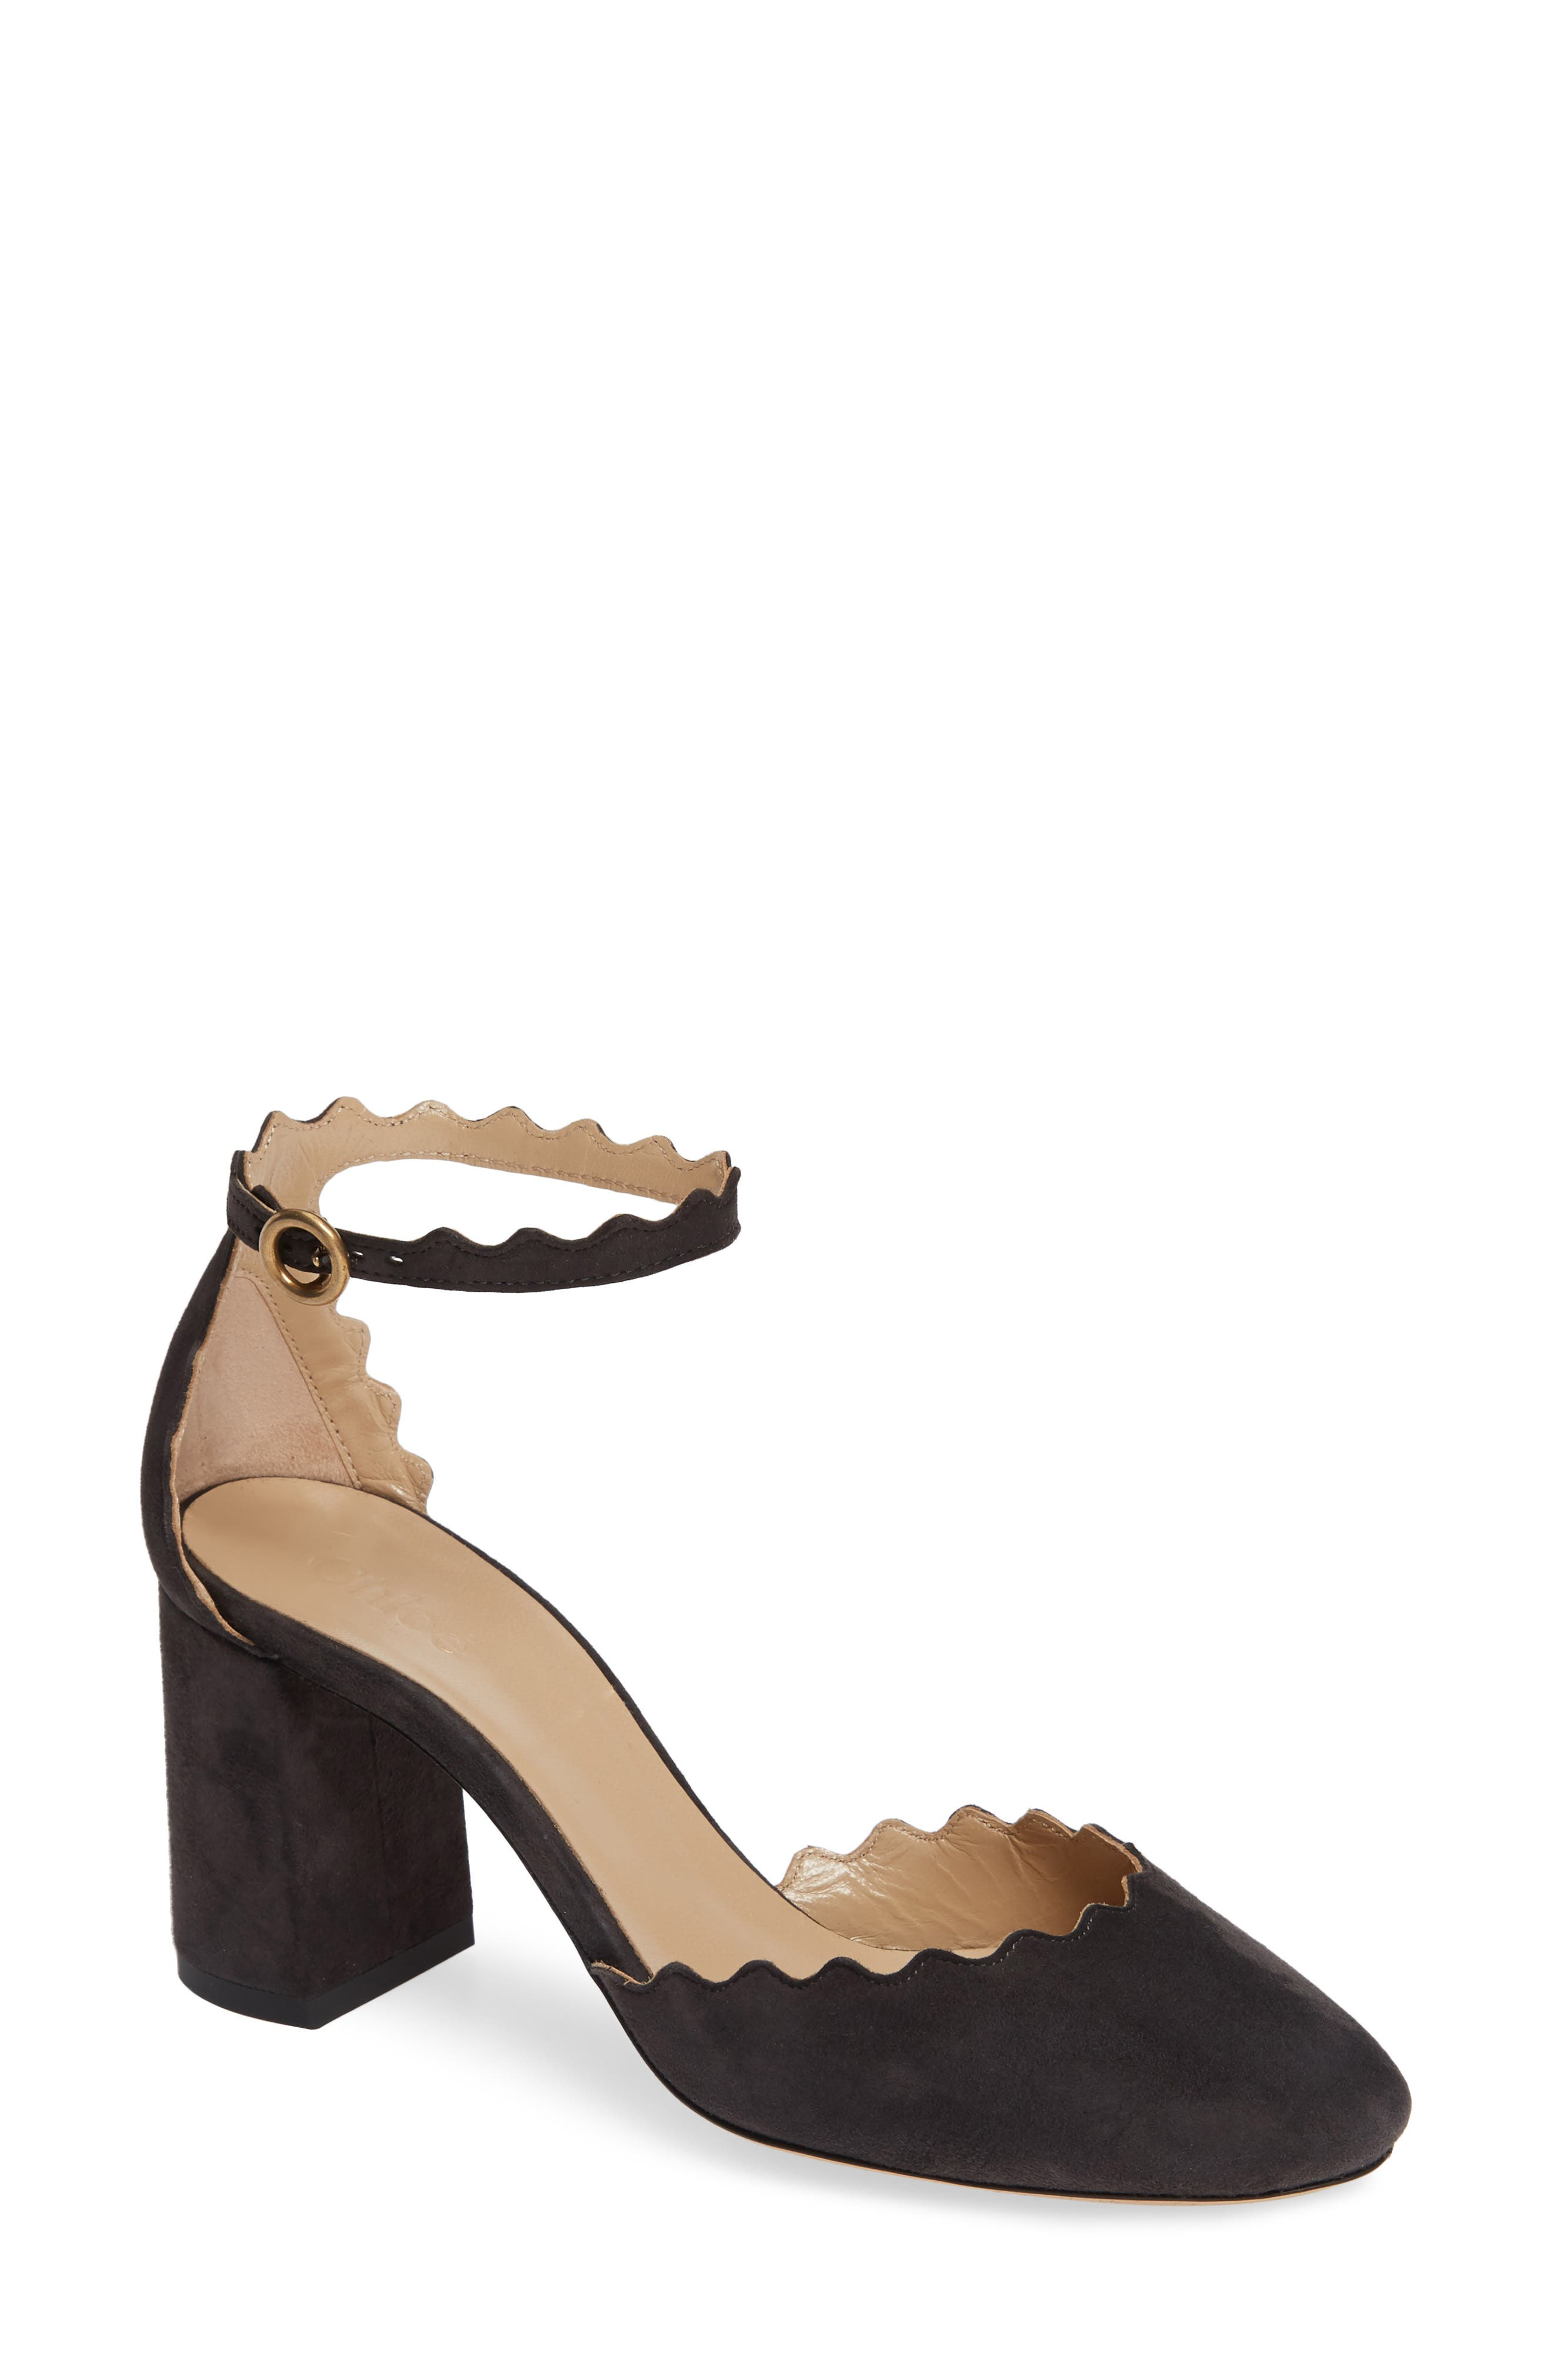 Scalloped Ankle Strap d'Orsay Pump,                         Main,                         color, CHARCOAL BLACK